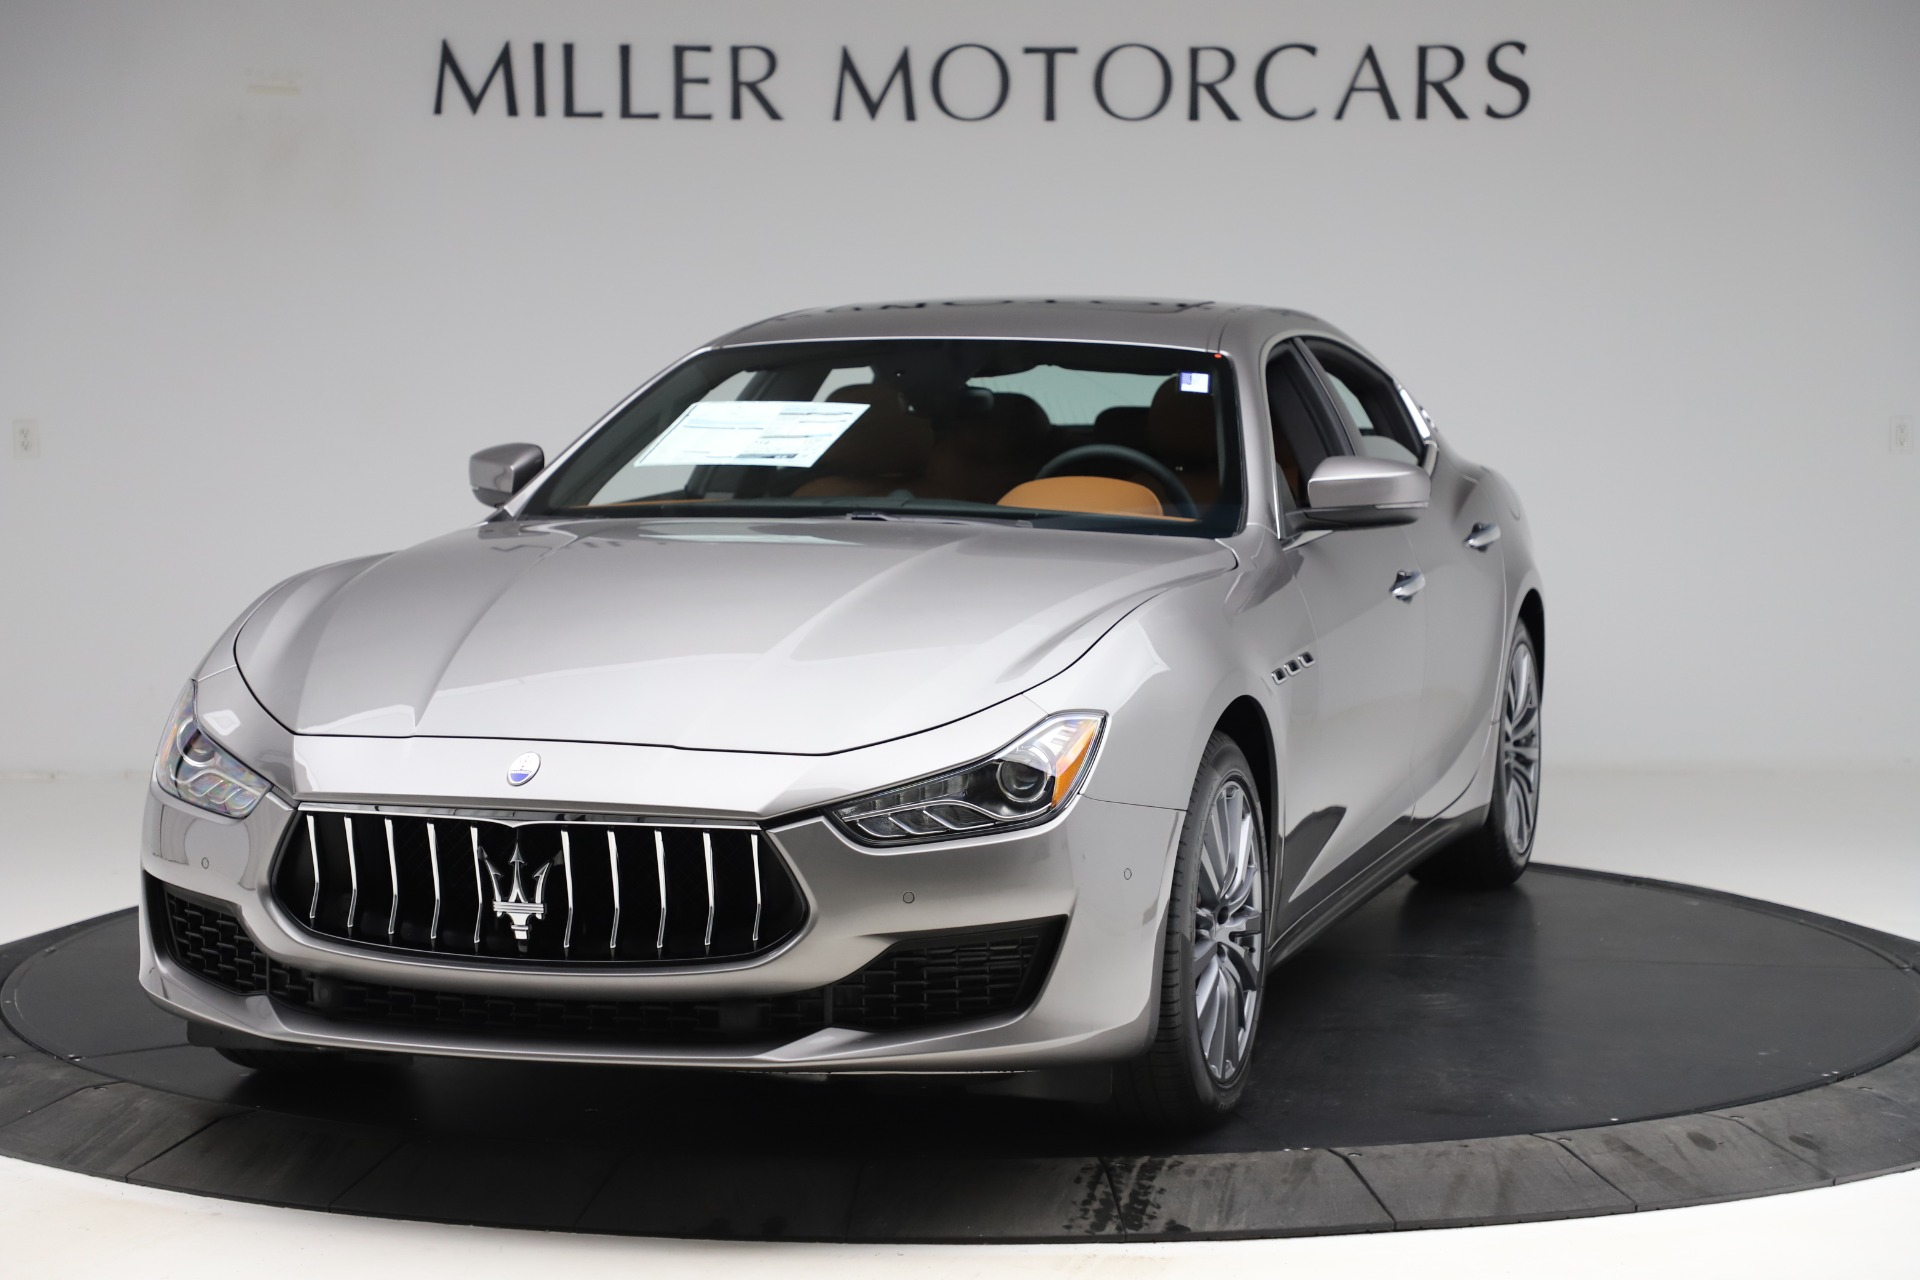 New 2020 Maserati Ghibli S Q4 for sale $79,985 at McLaren Greenwich in Greenwich CT 06830 1